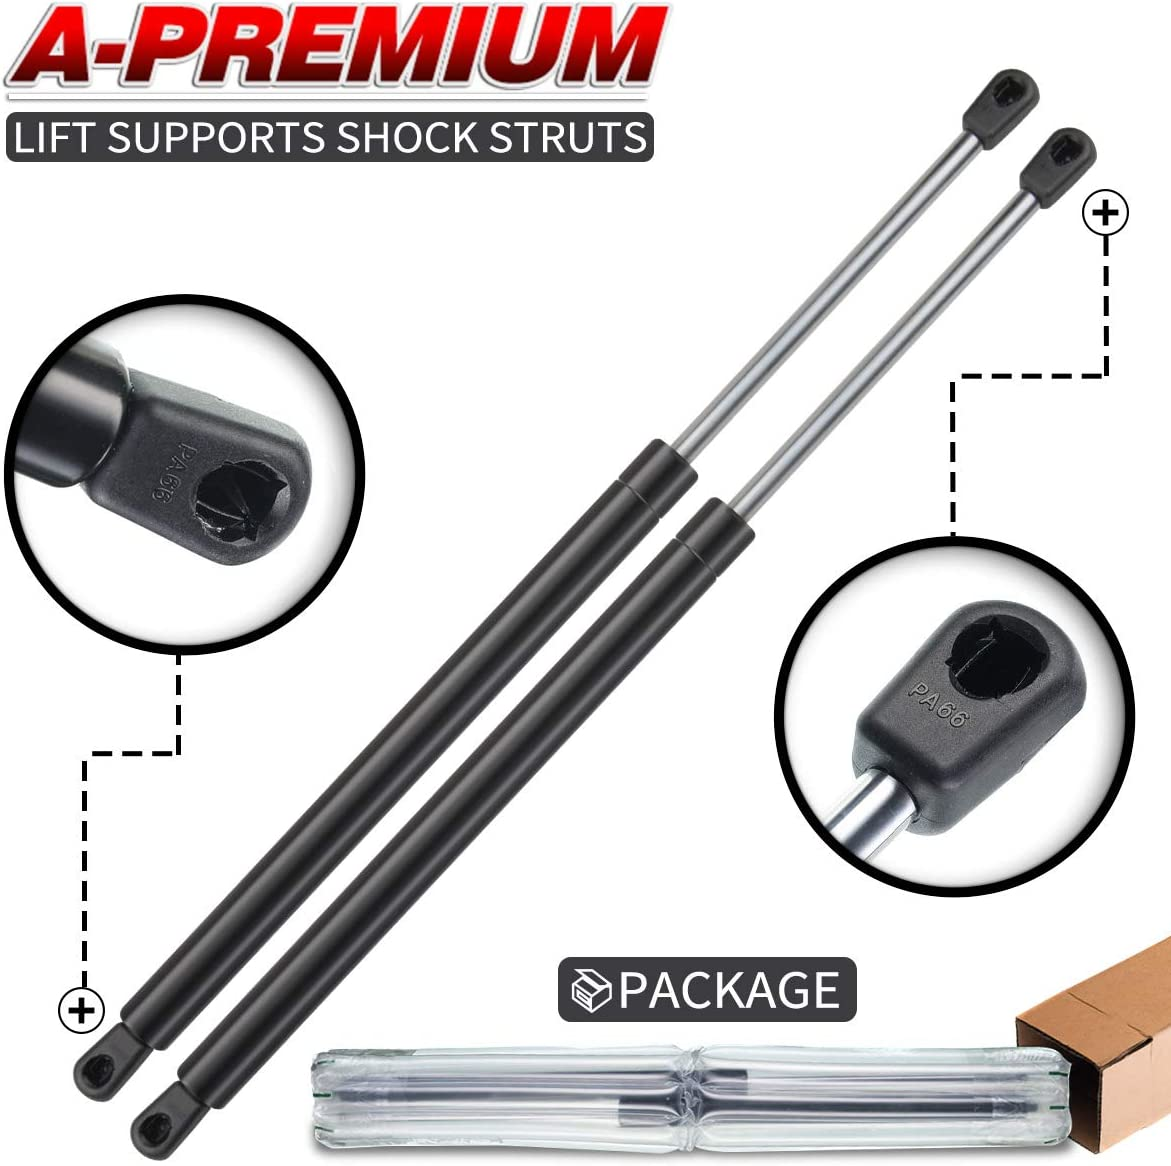 A-Premium Tailgate Hatch Lift Supports Shock Strut for Saturn Vue 2002-2007 2-PC Set